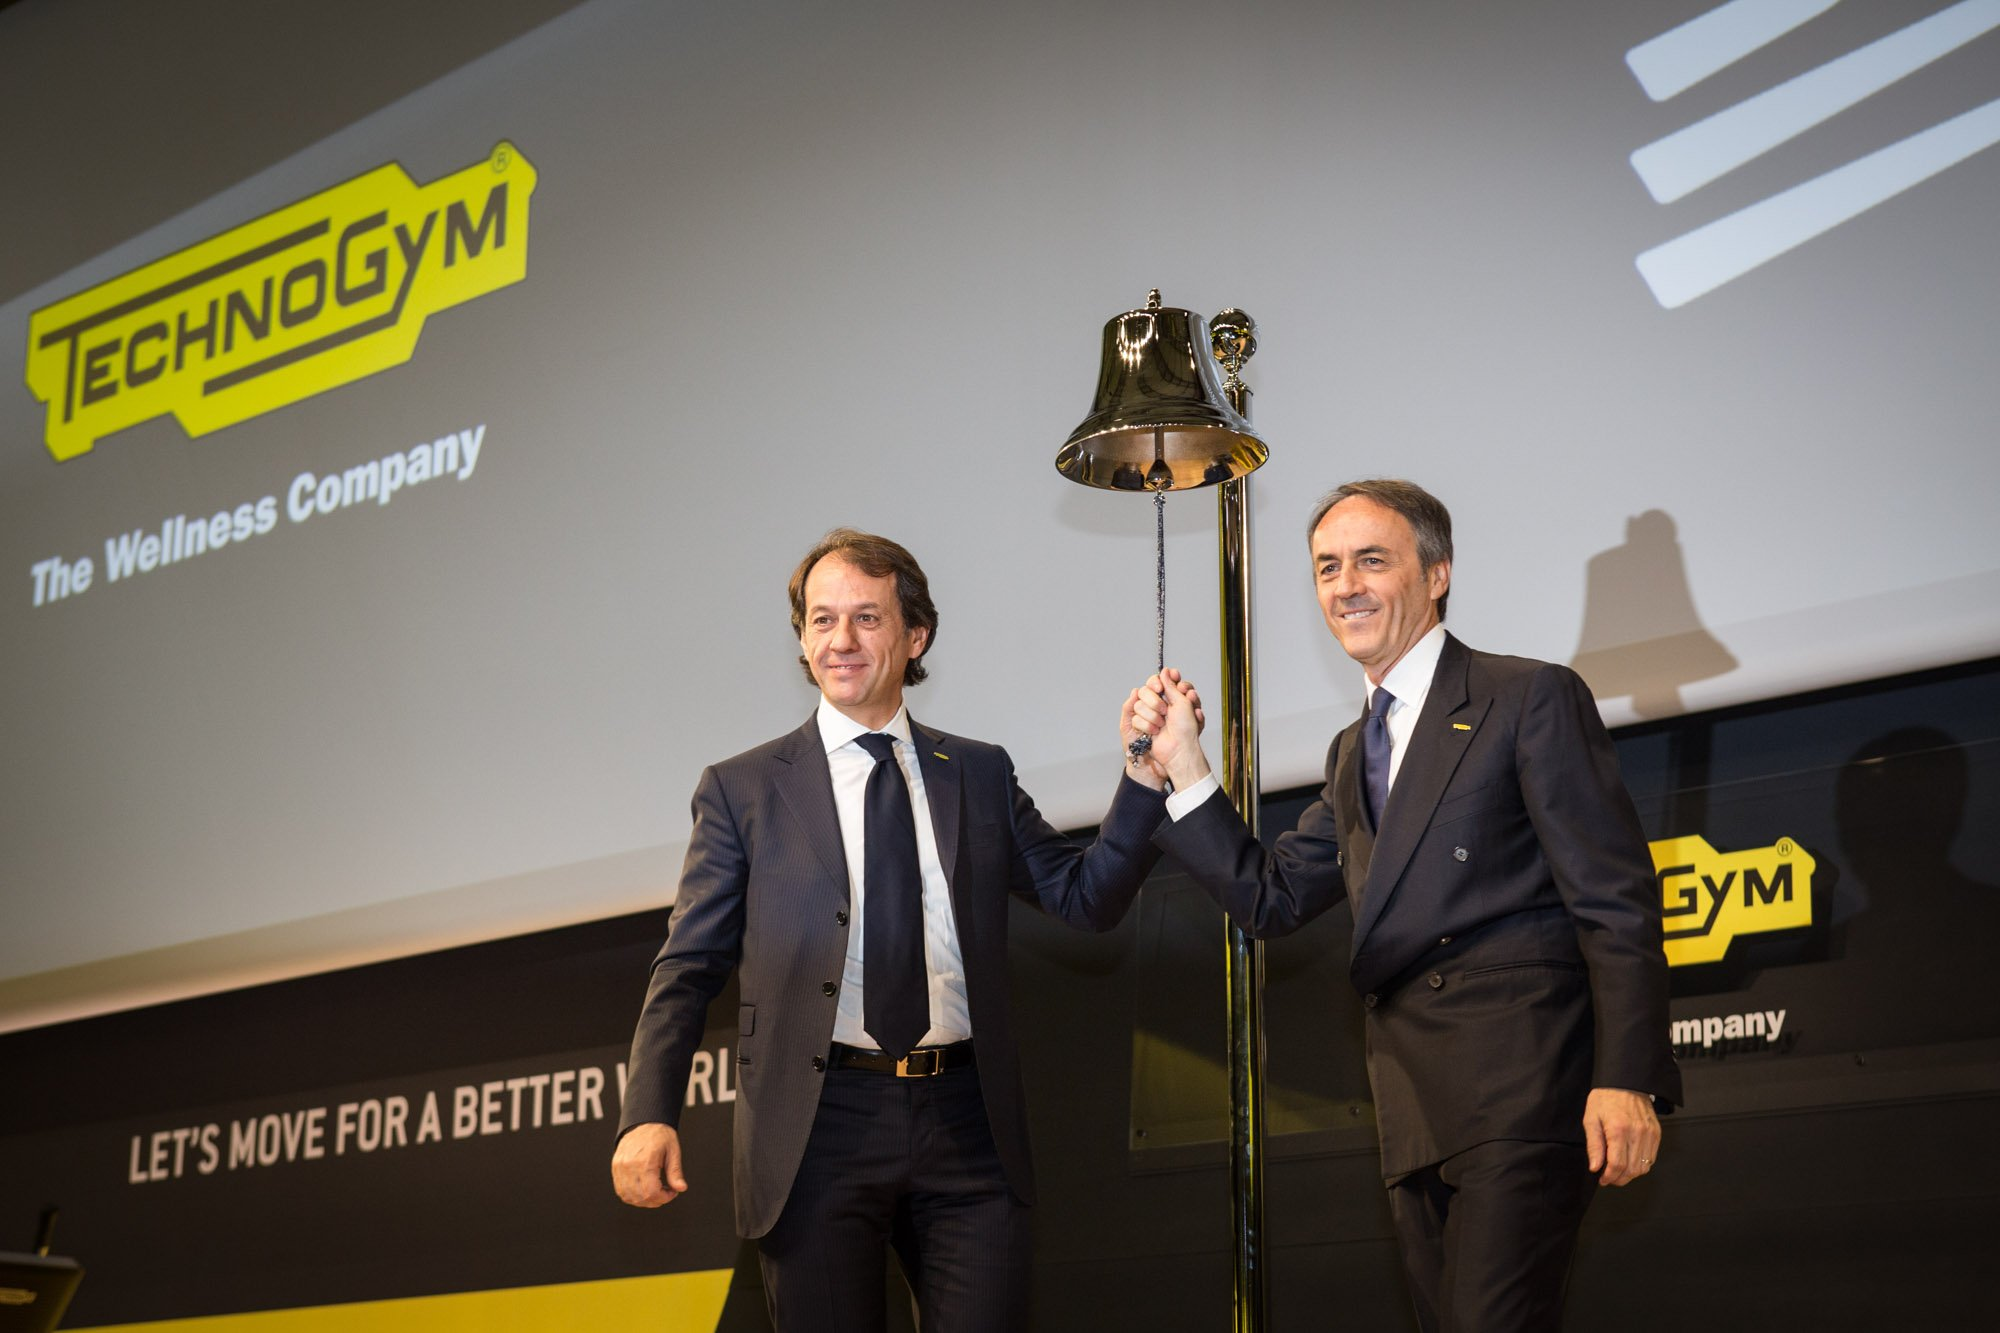 TECHNOGYM awarded as best IPO in Europe for 2016